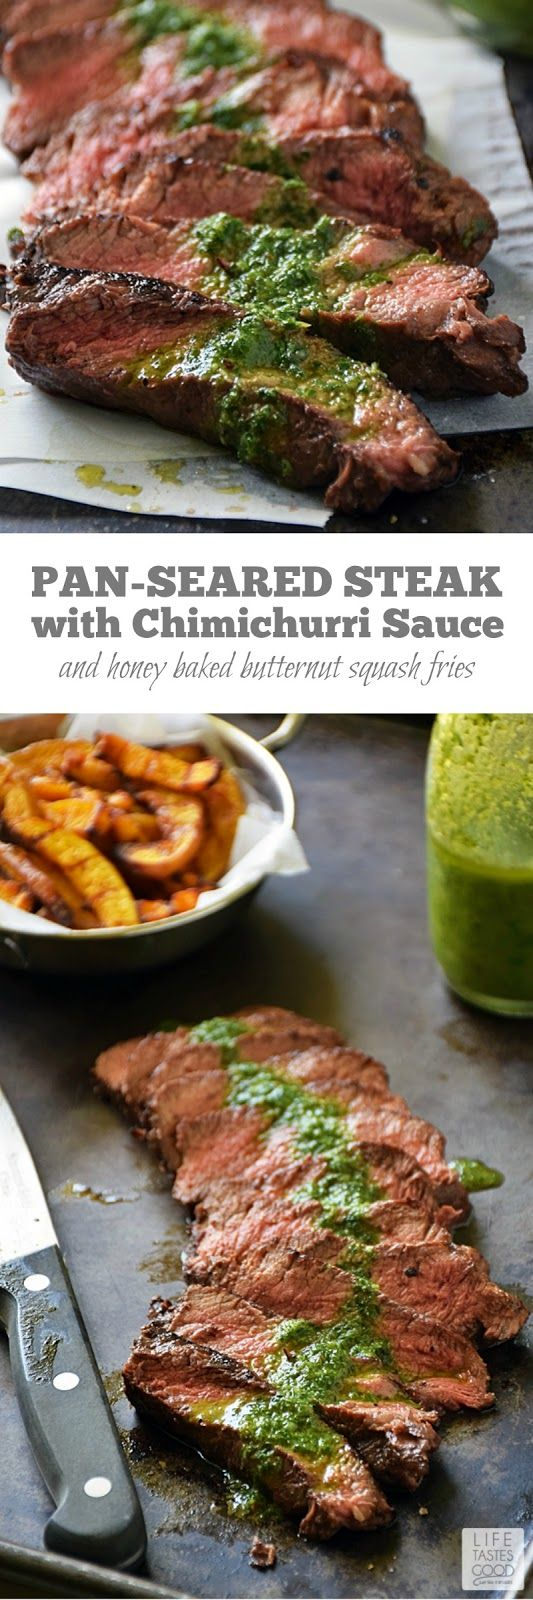 Pan-Seared Steak with Chimichurri sauce | by Life Tastes Good is an easy to…